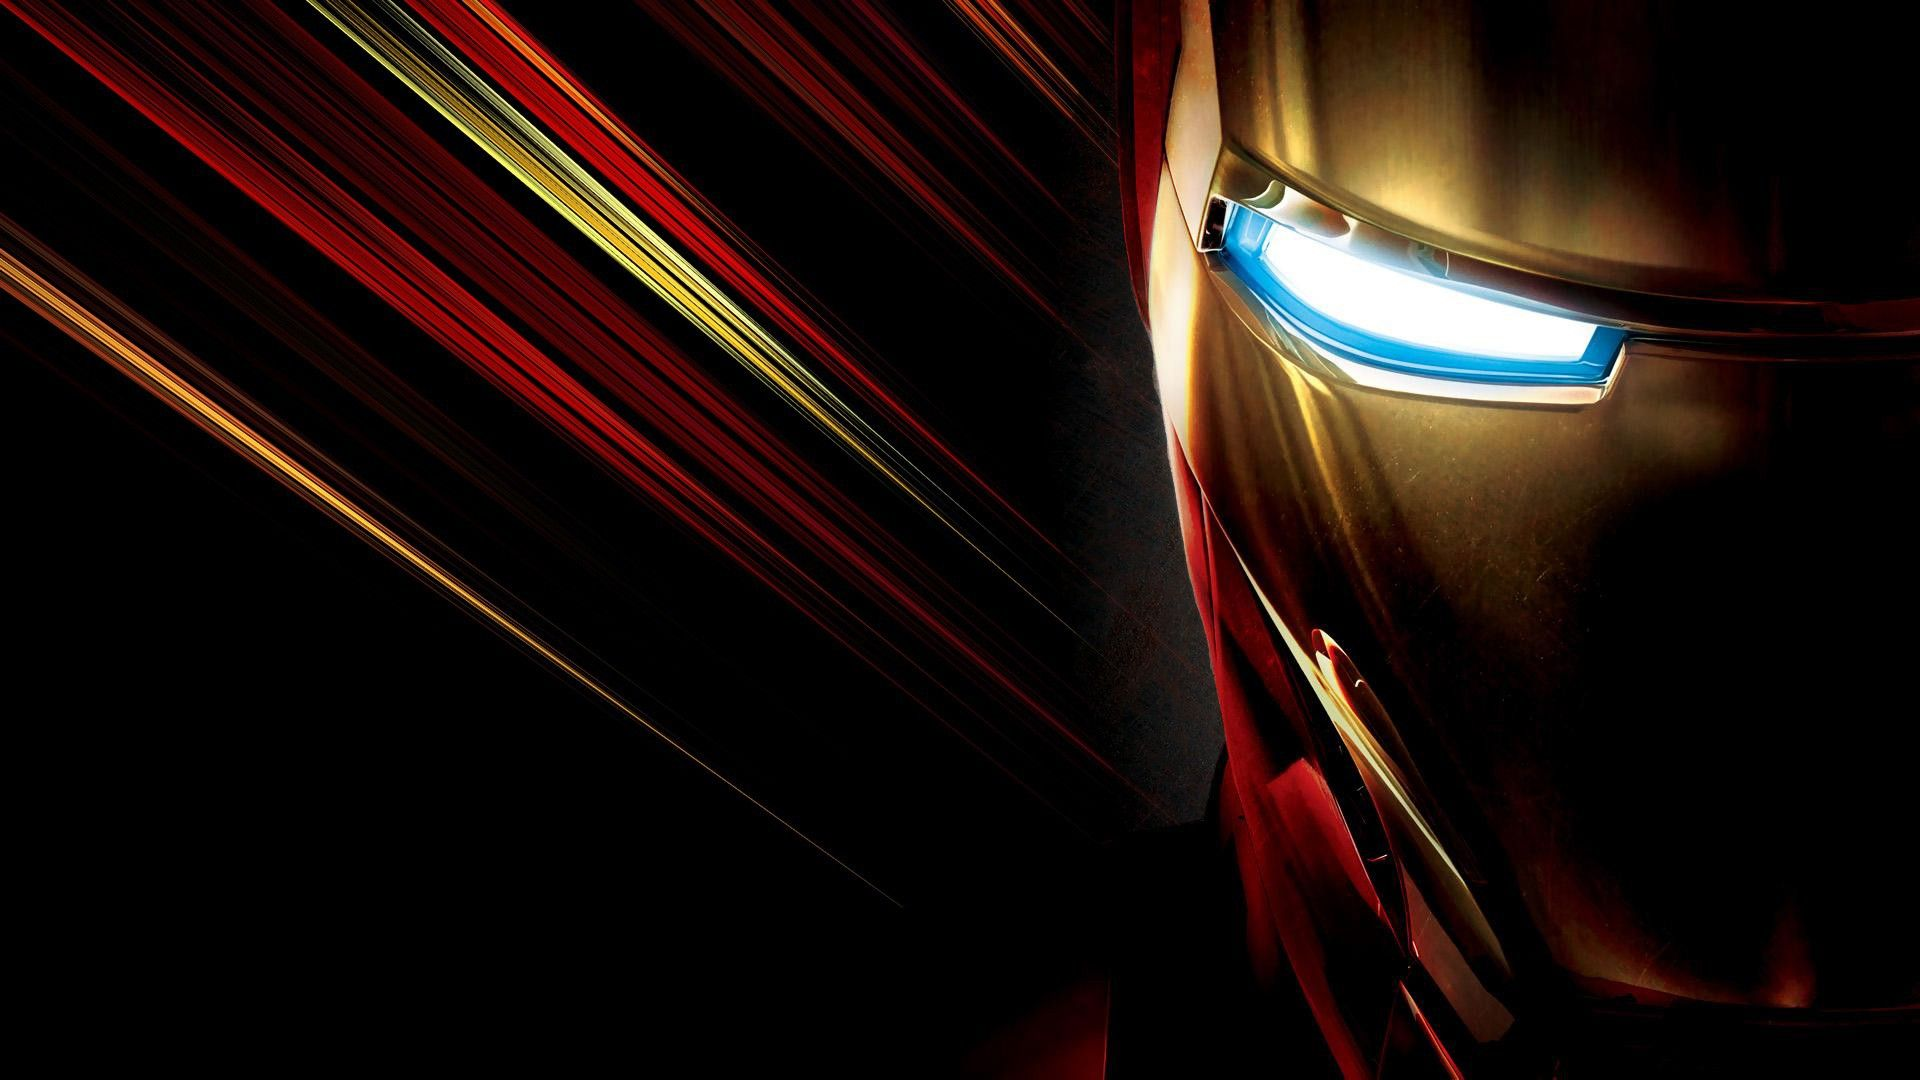 HD Wallpapers Of Iron Man Group 1920x1080 Wallpaper Hd 39